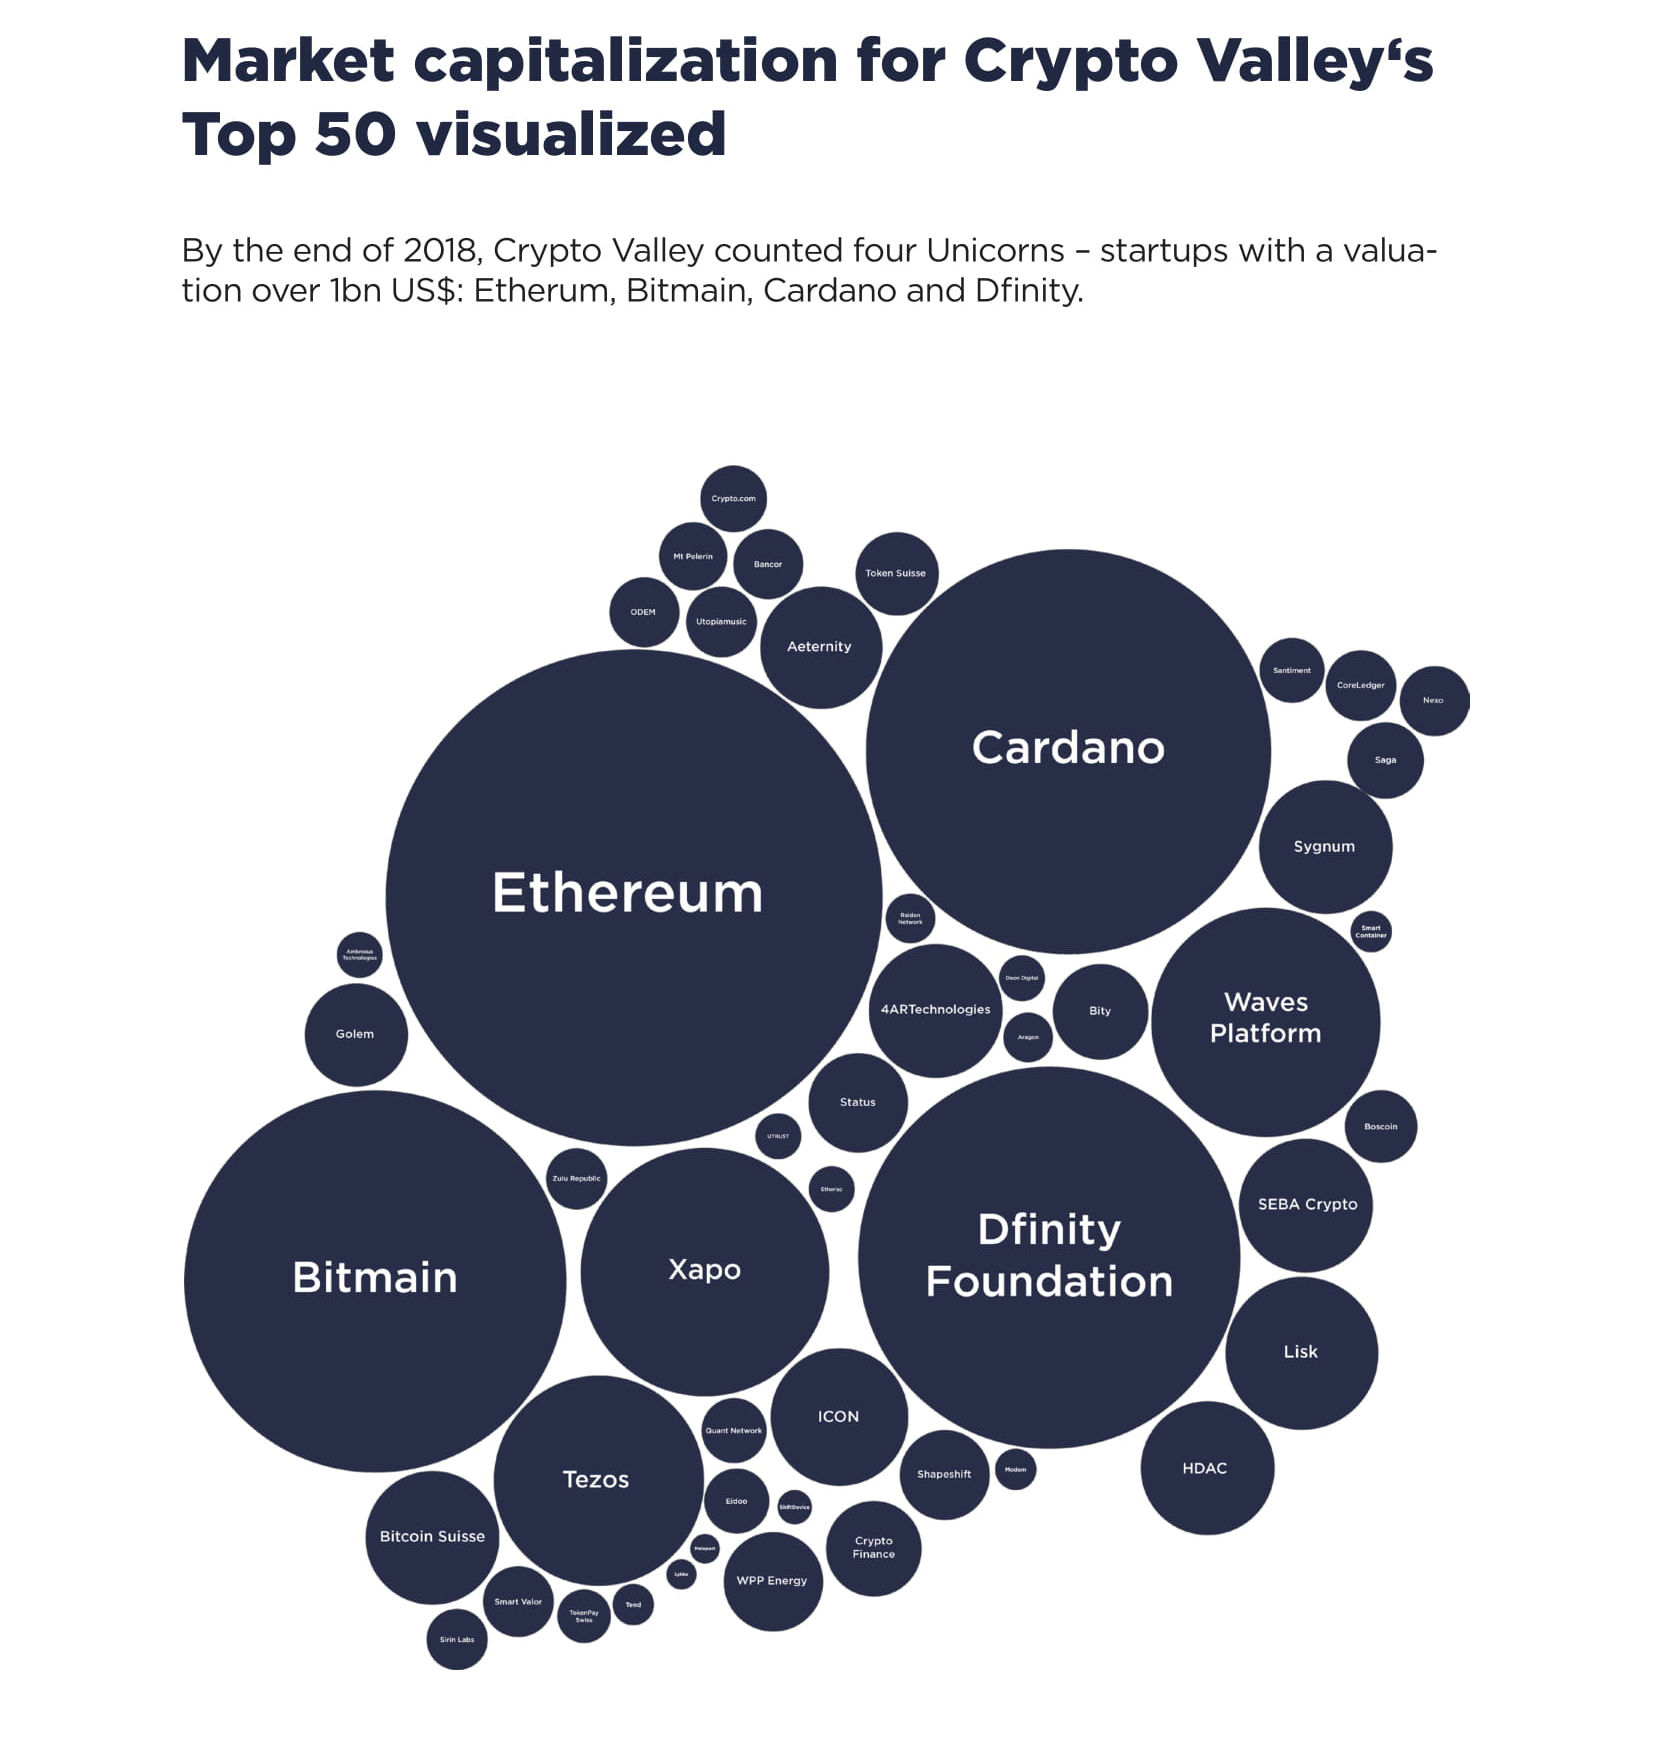 Market capitalization for Crypto Valley's Top 50 visualized